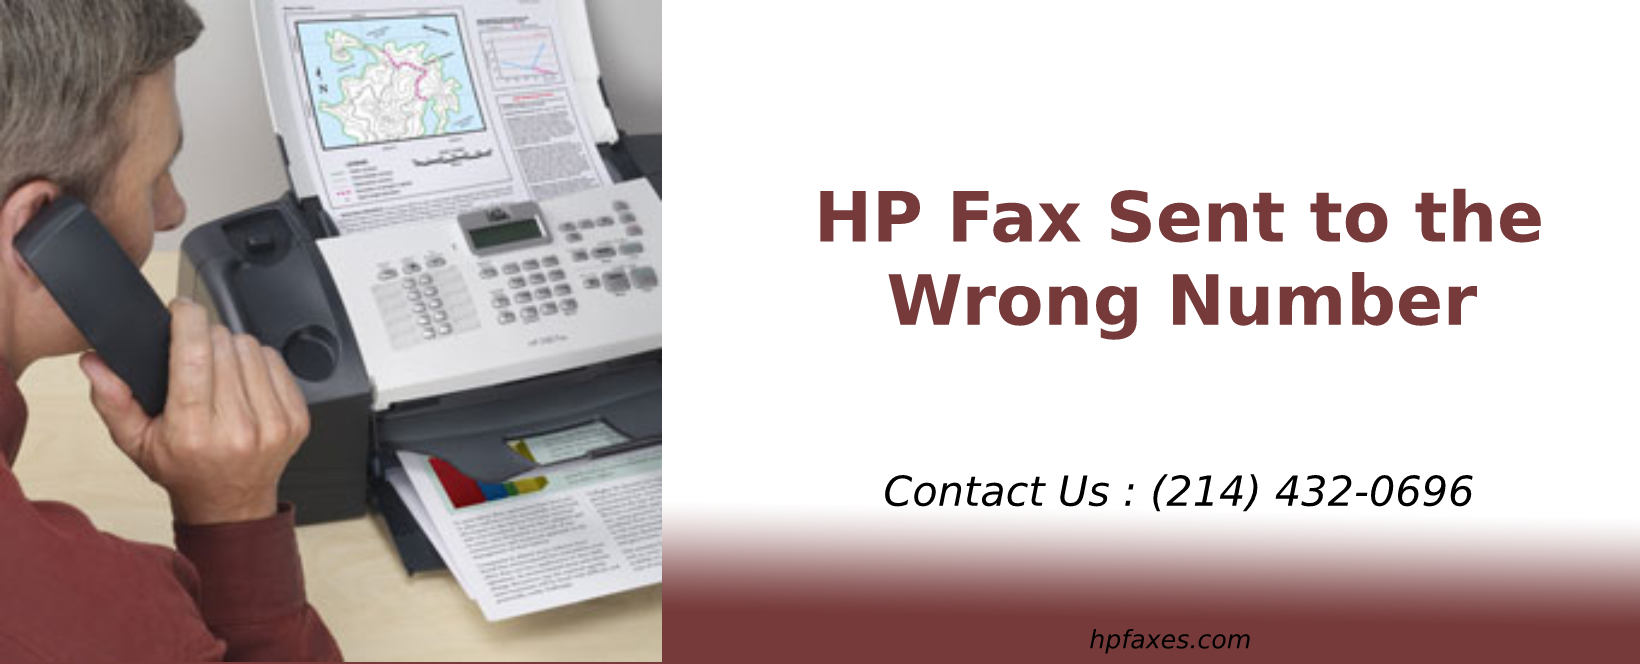 HP-Fax-Sent-to-the-Wrong-Number